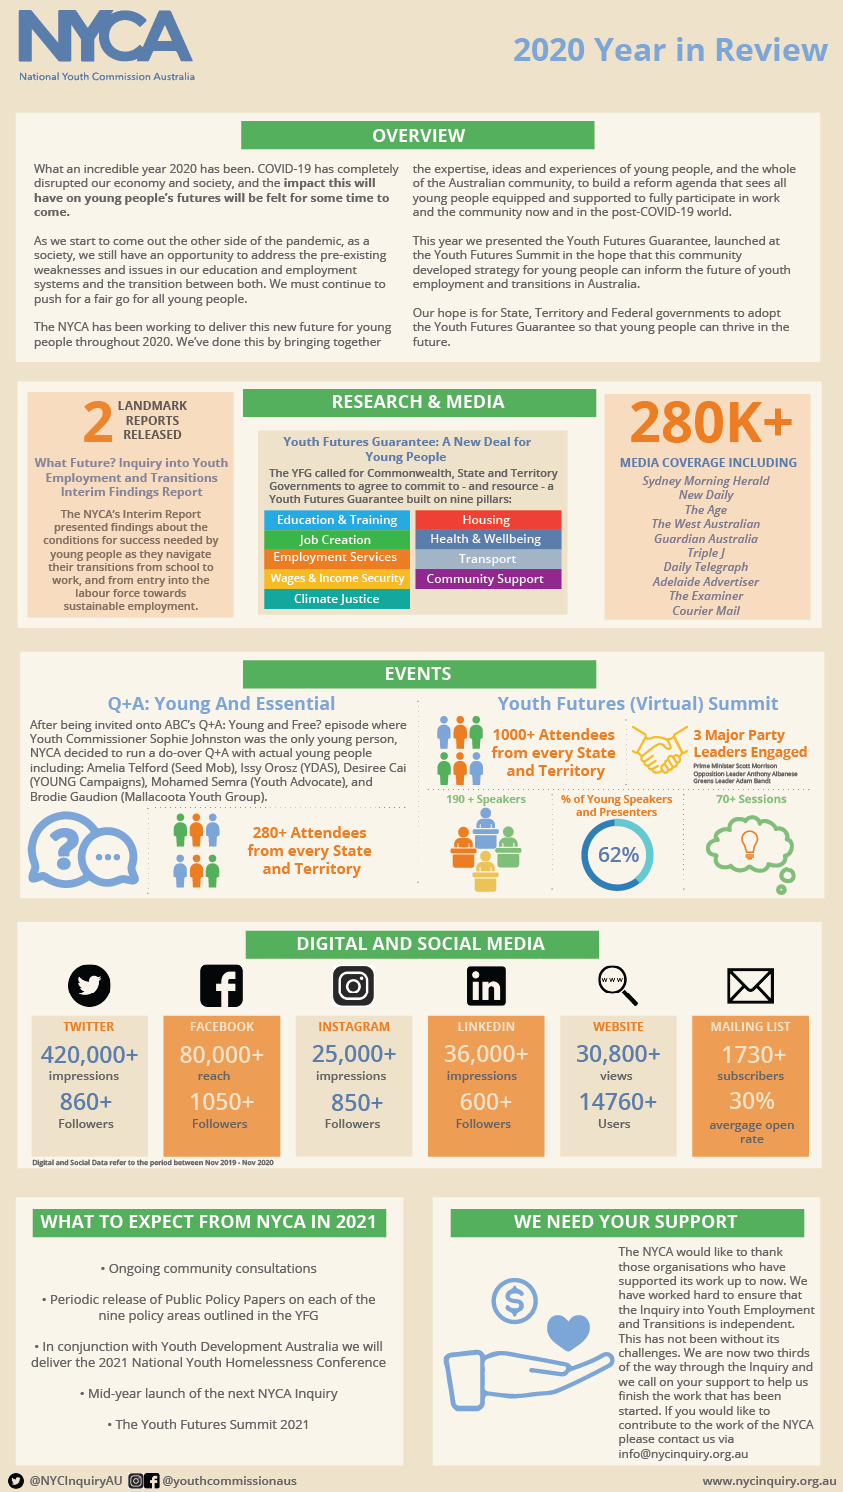 Image of an end of year infographic representing visual data from the National Youth Commission Australia